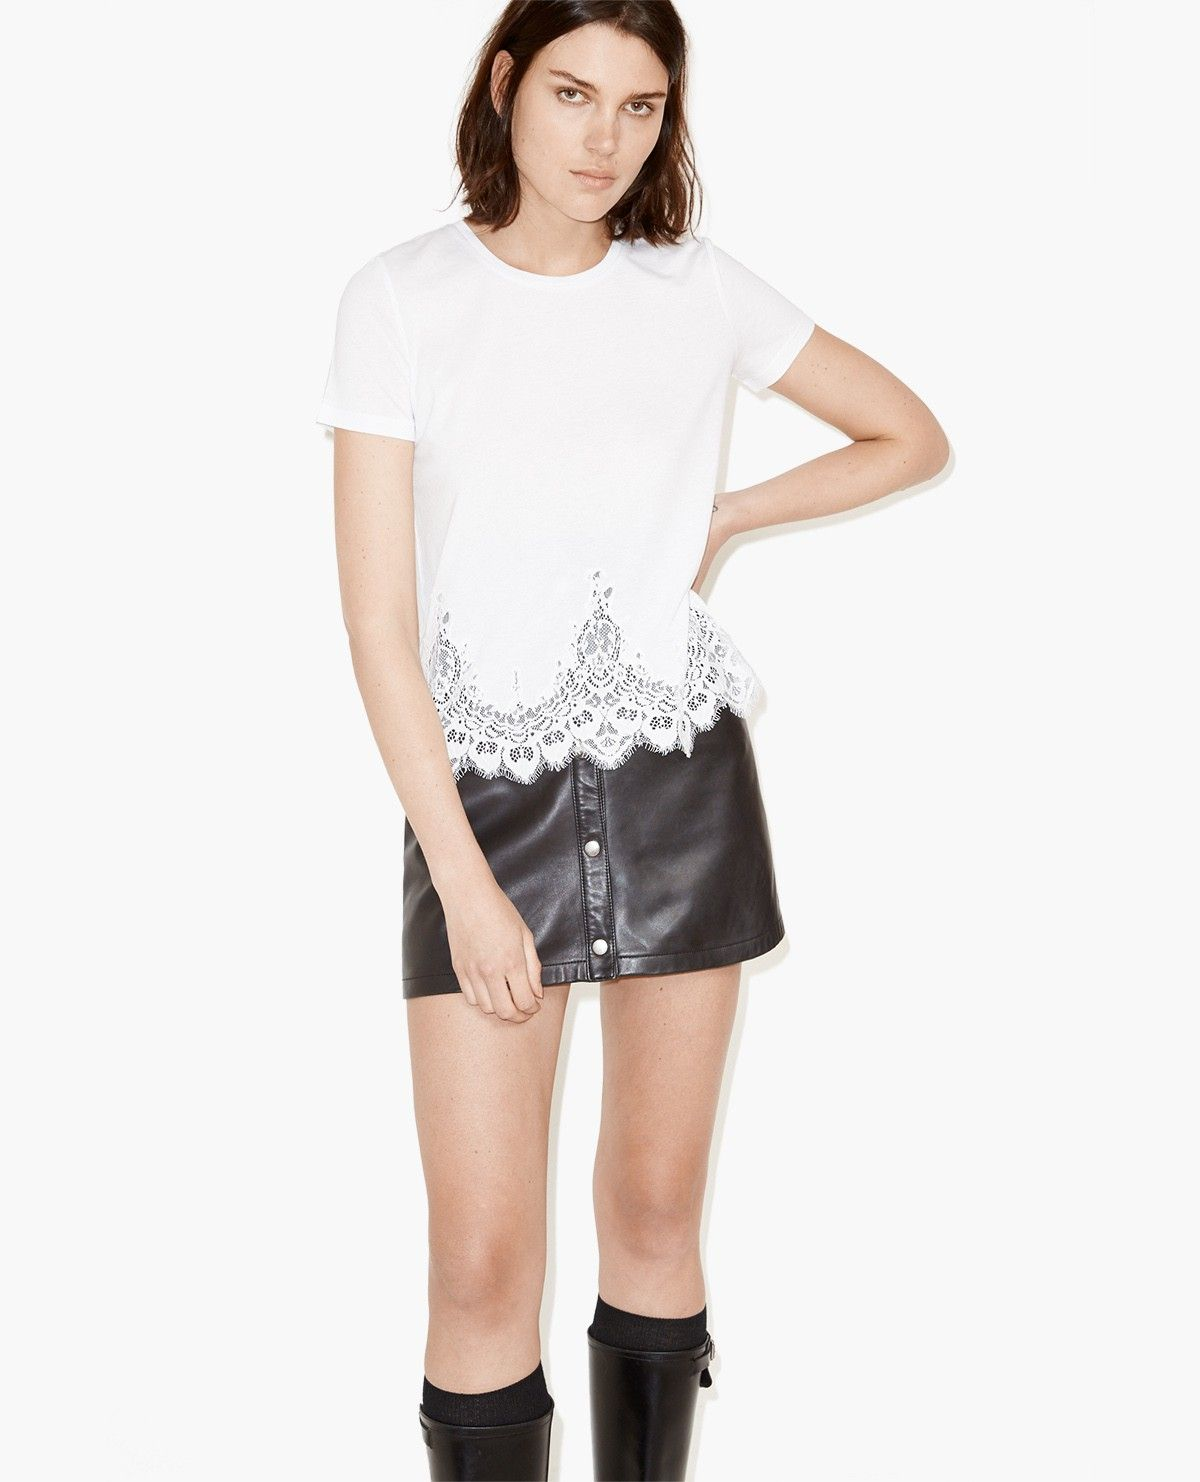 T-shirt with lace panels - The Kooples